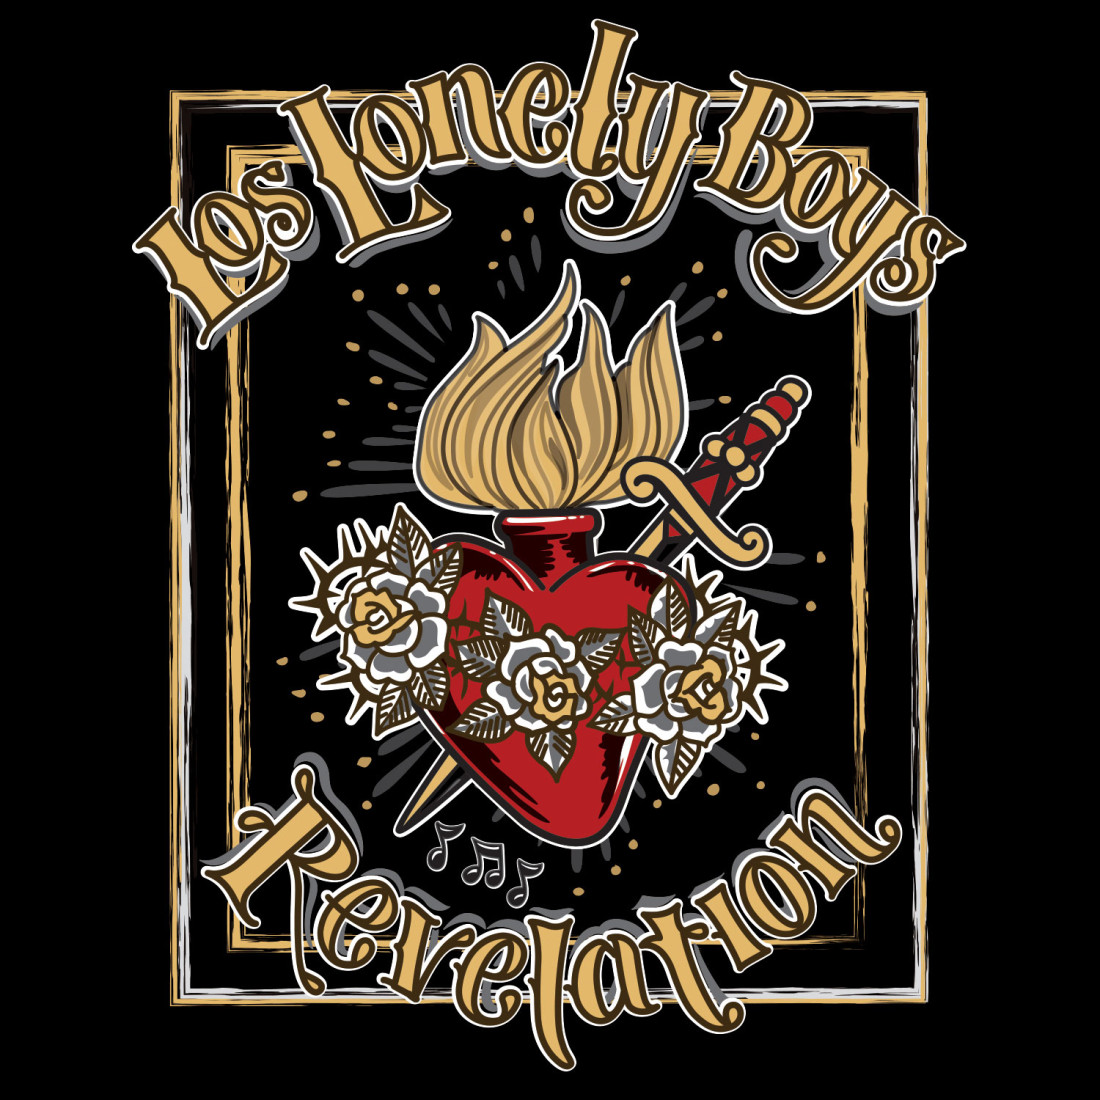 Los Lonely Boys - Revelation (2014)